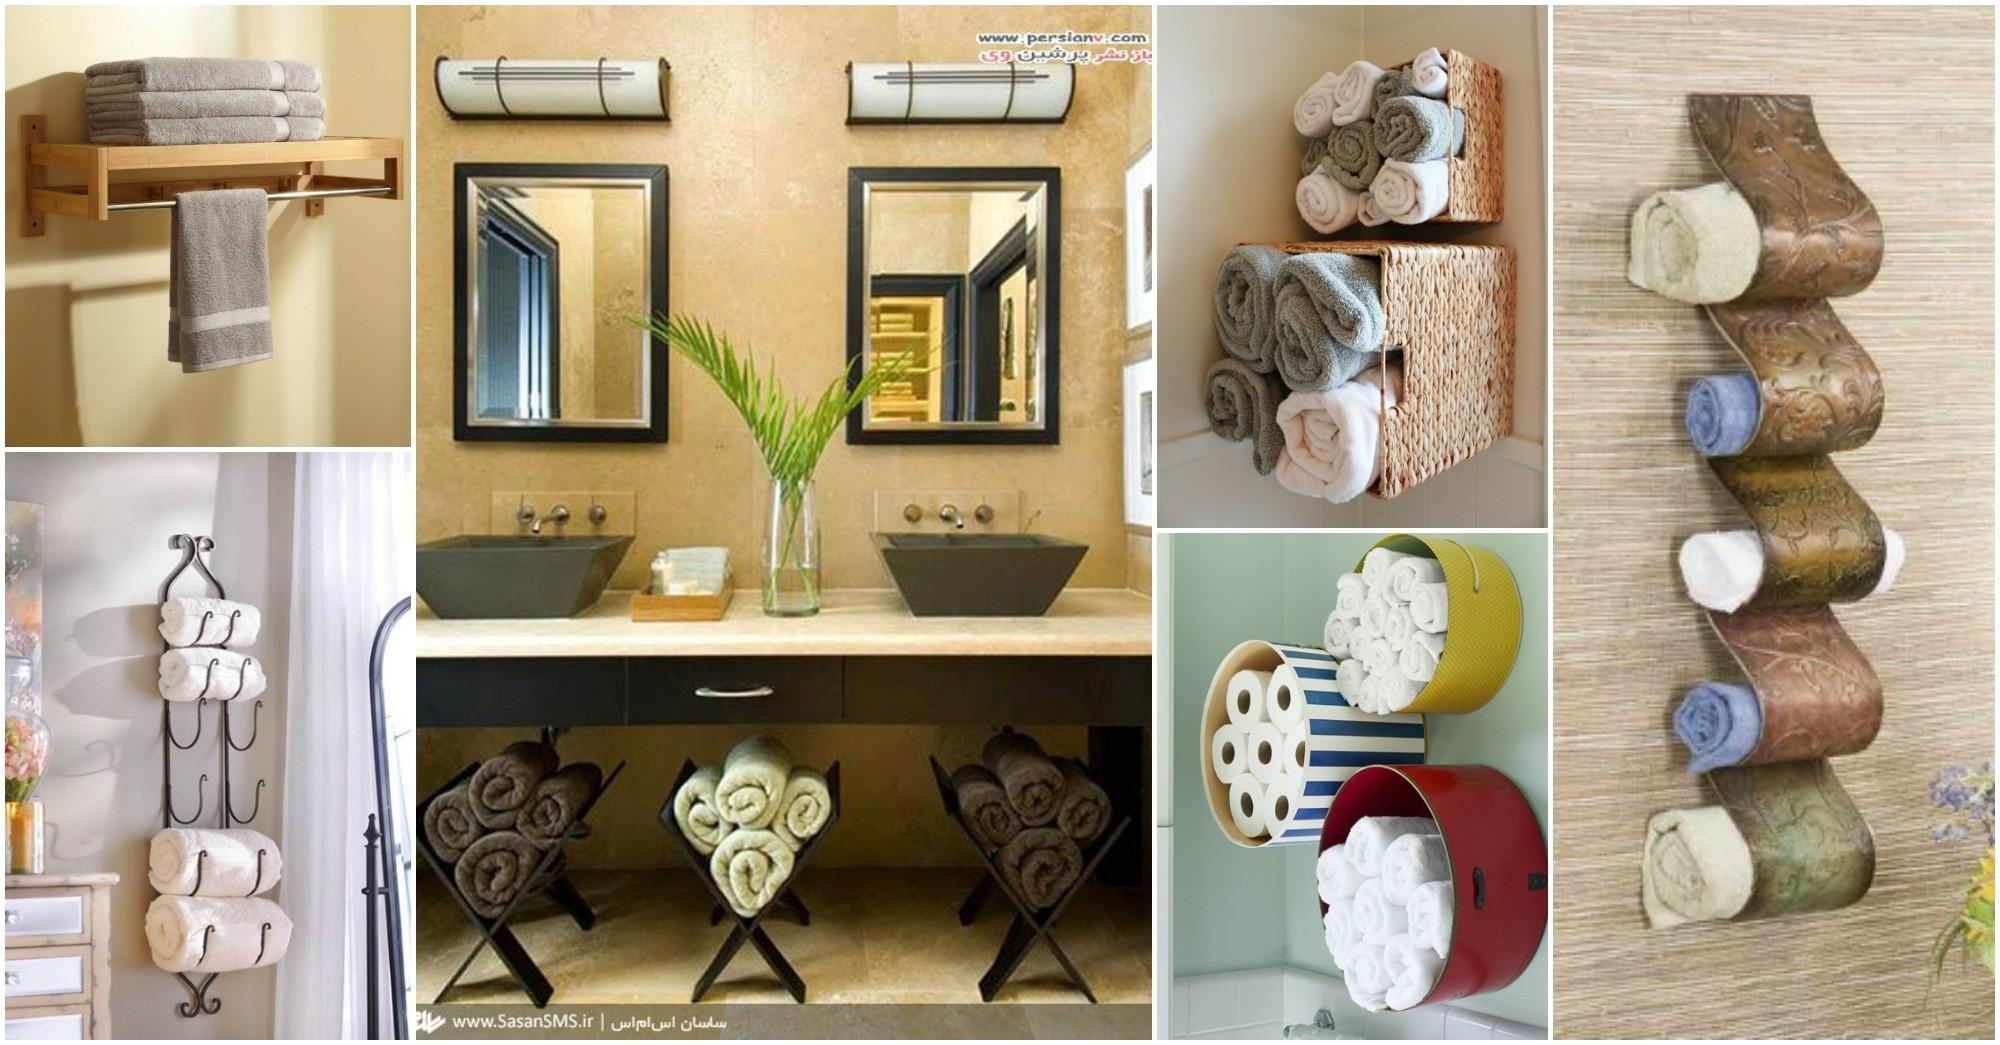 Useful Bathroom Towel Storage Ideas Love